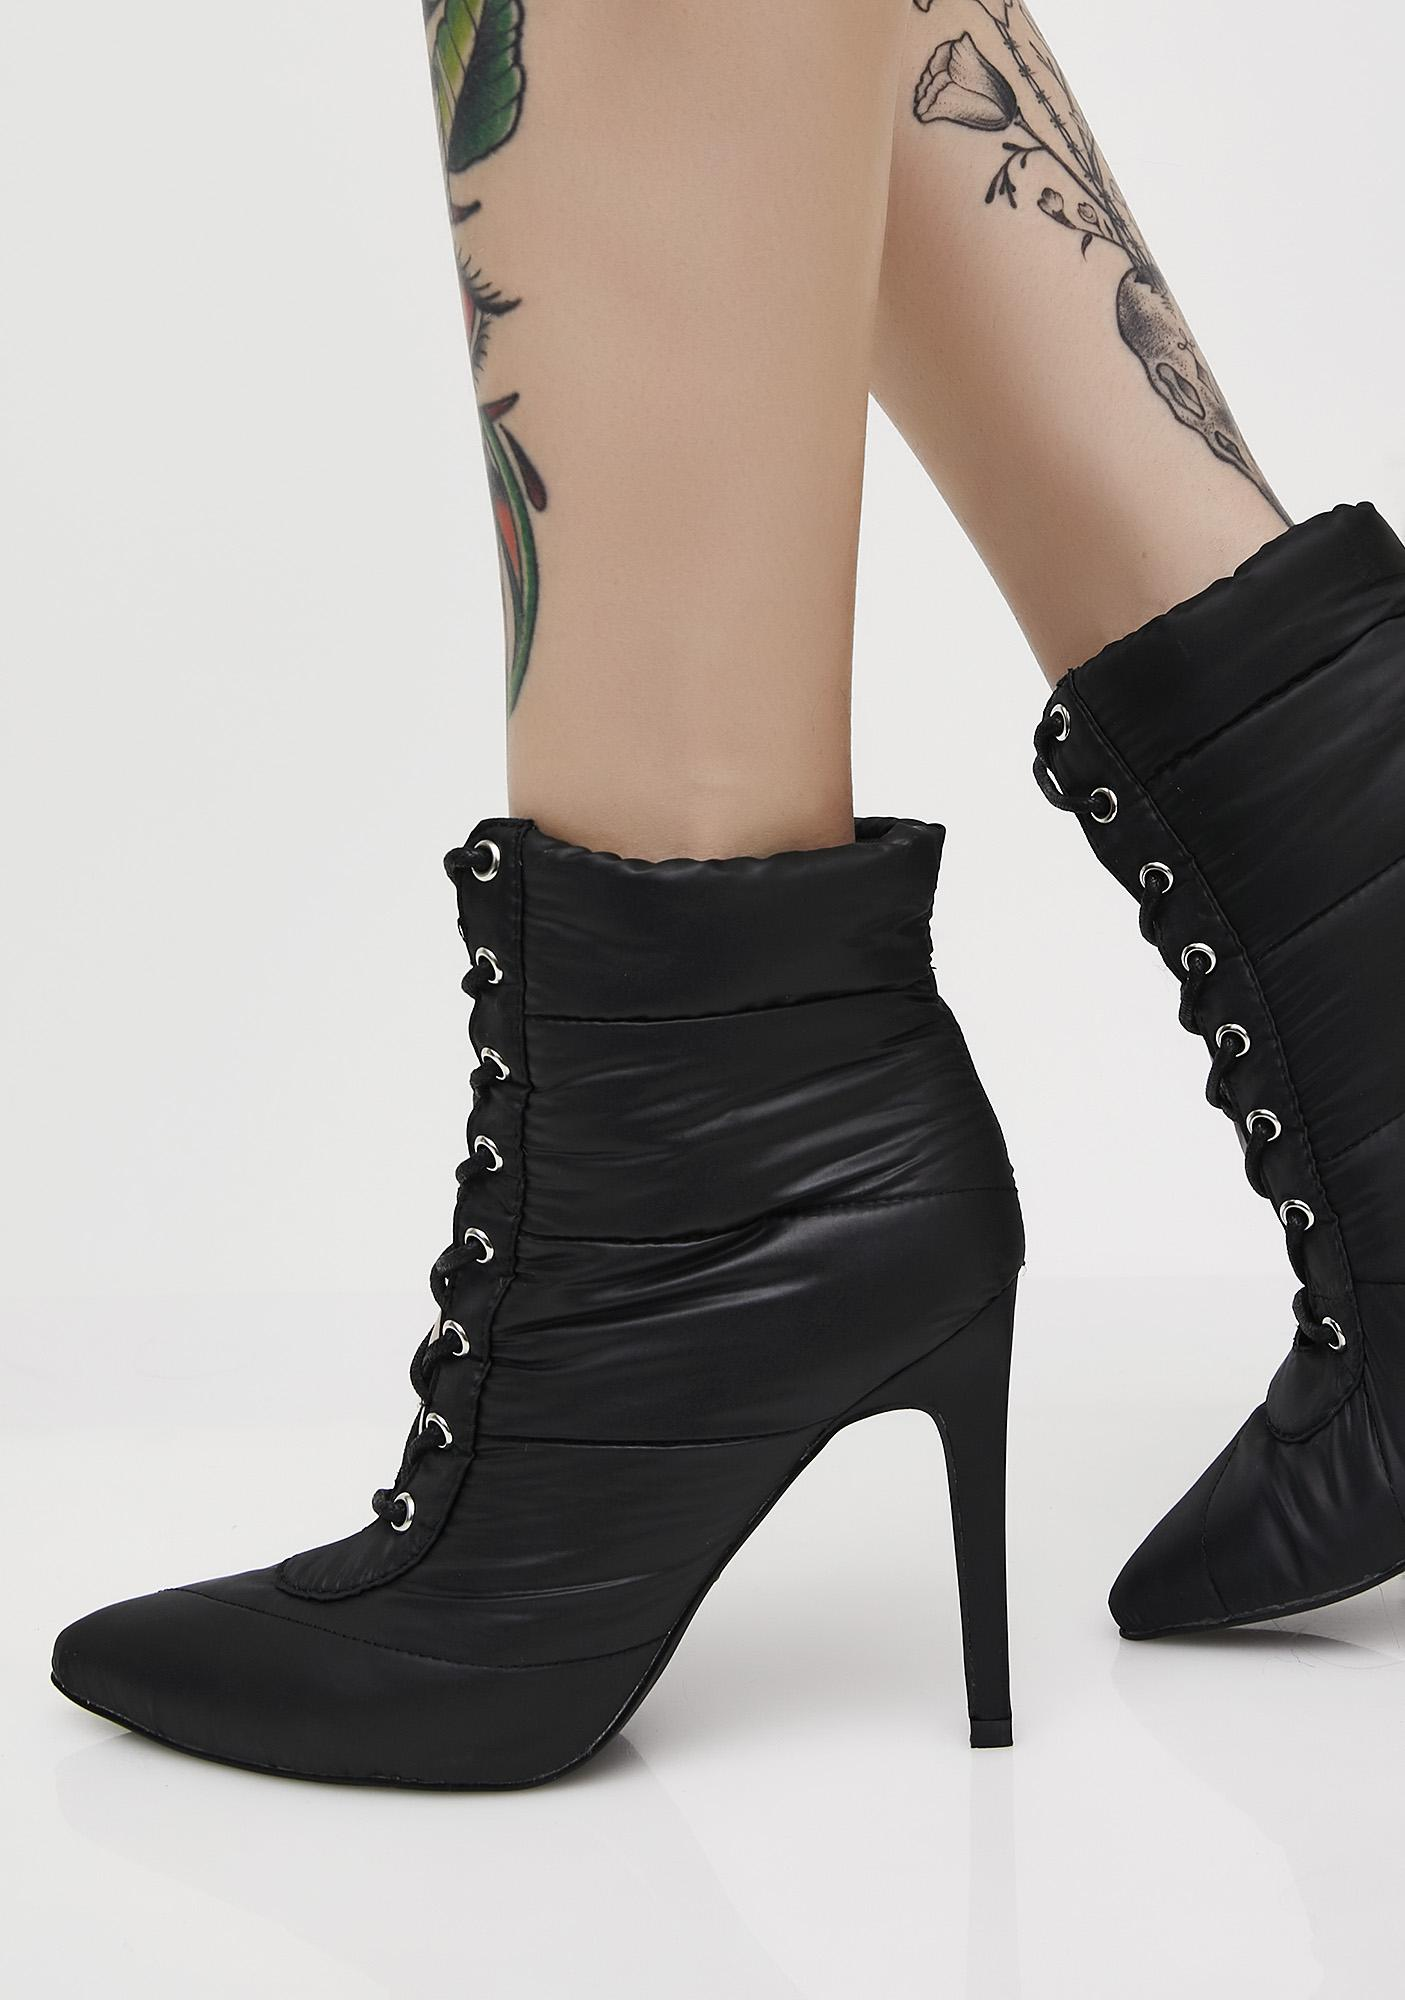 Street Cred Ankle Boots